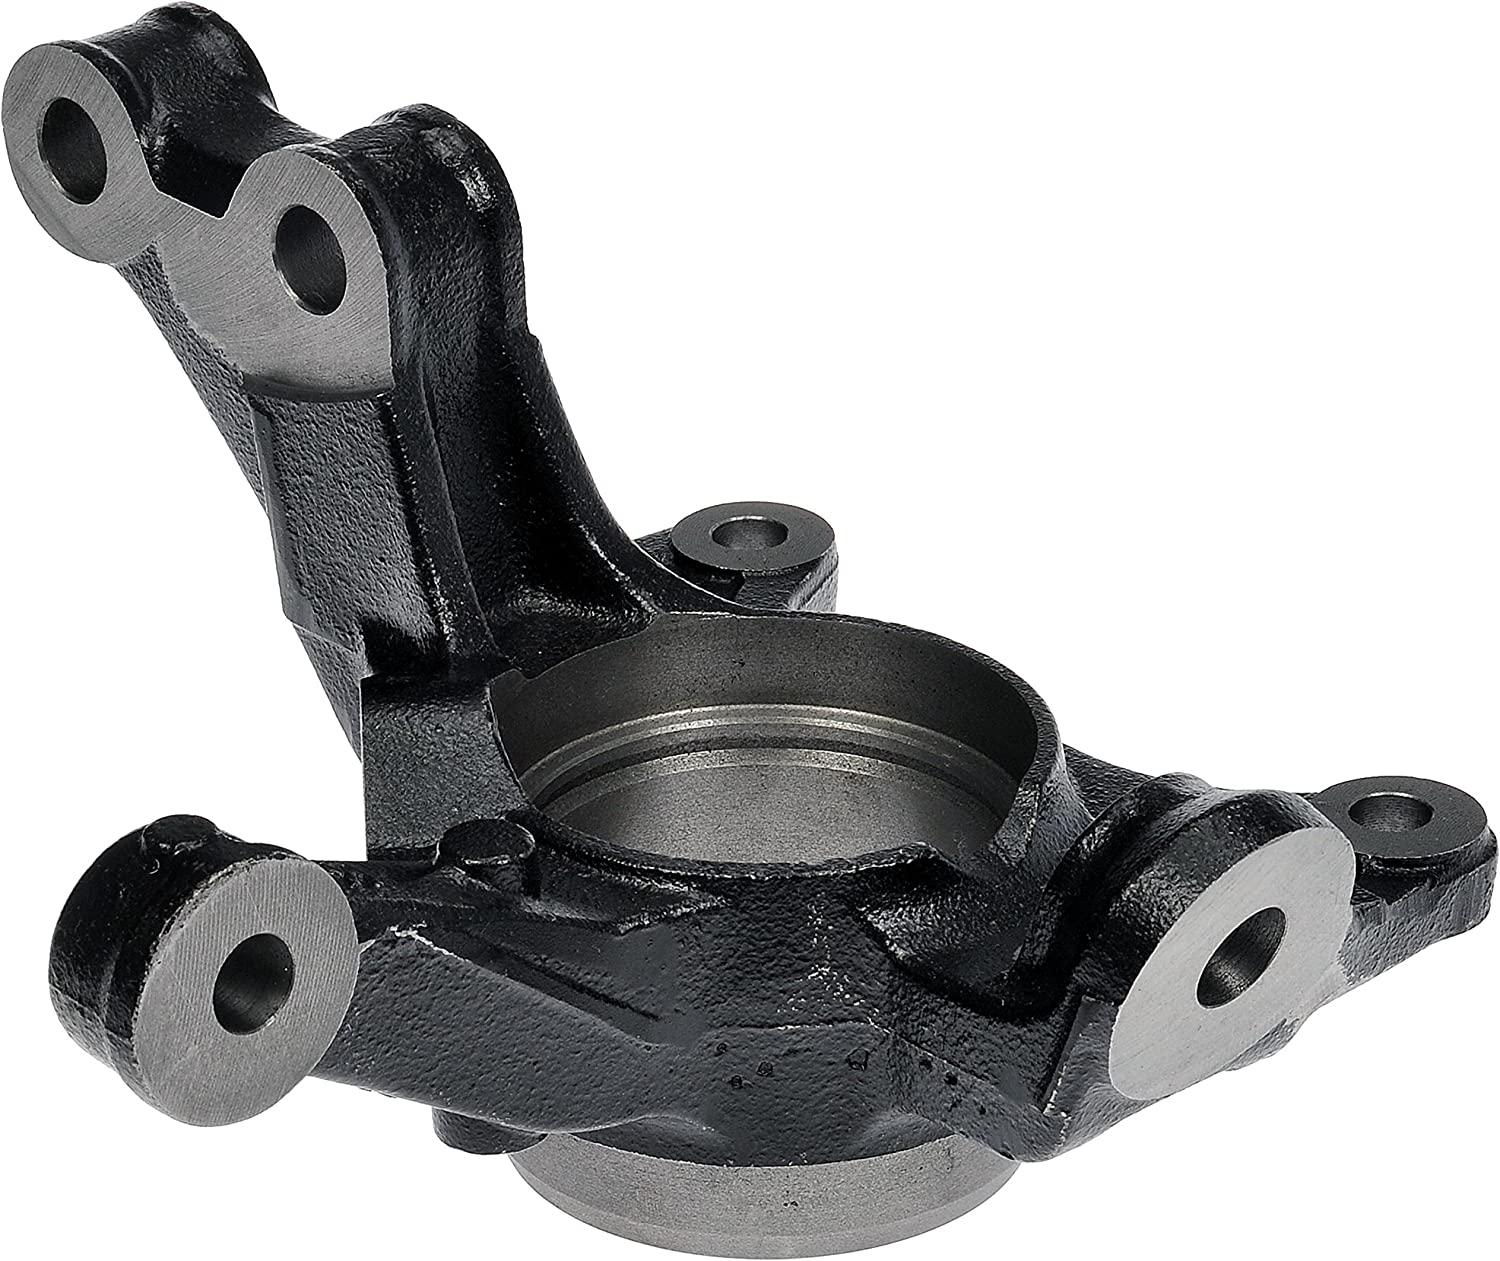 Dorman 698-165 Front Driver Side Steering Knuckle for Select Toyota Sienna Models